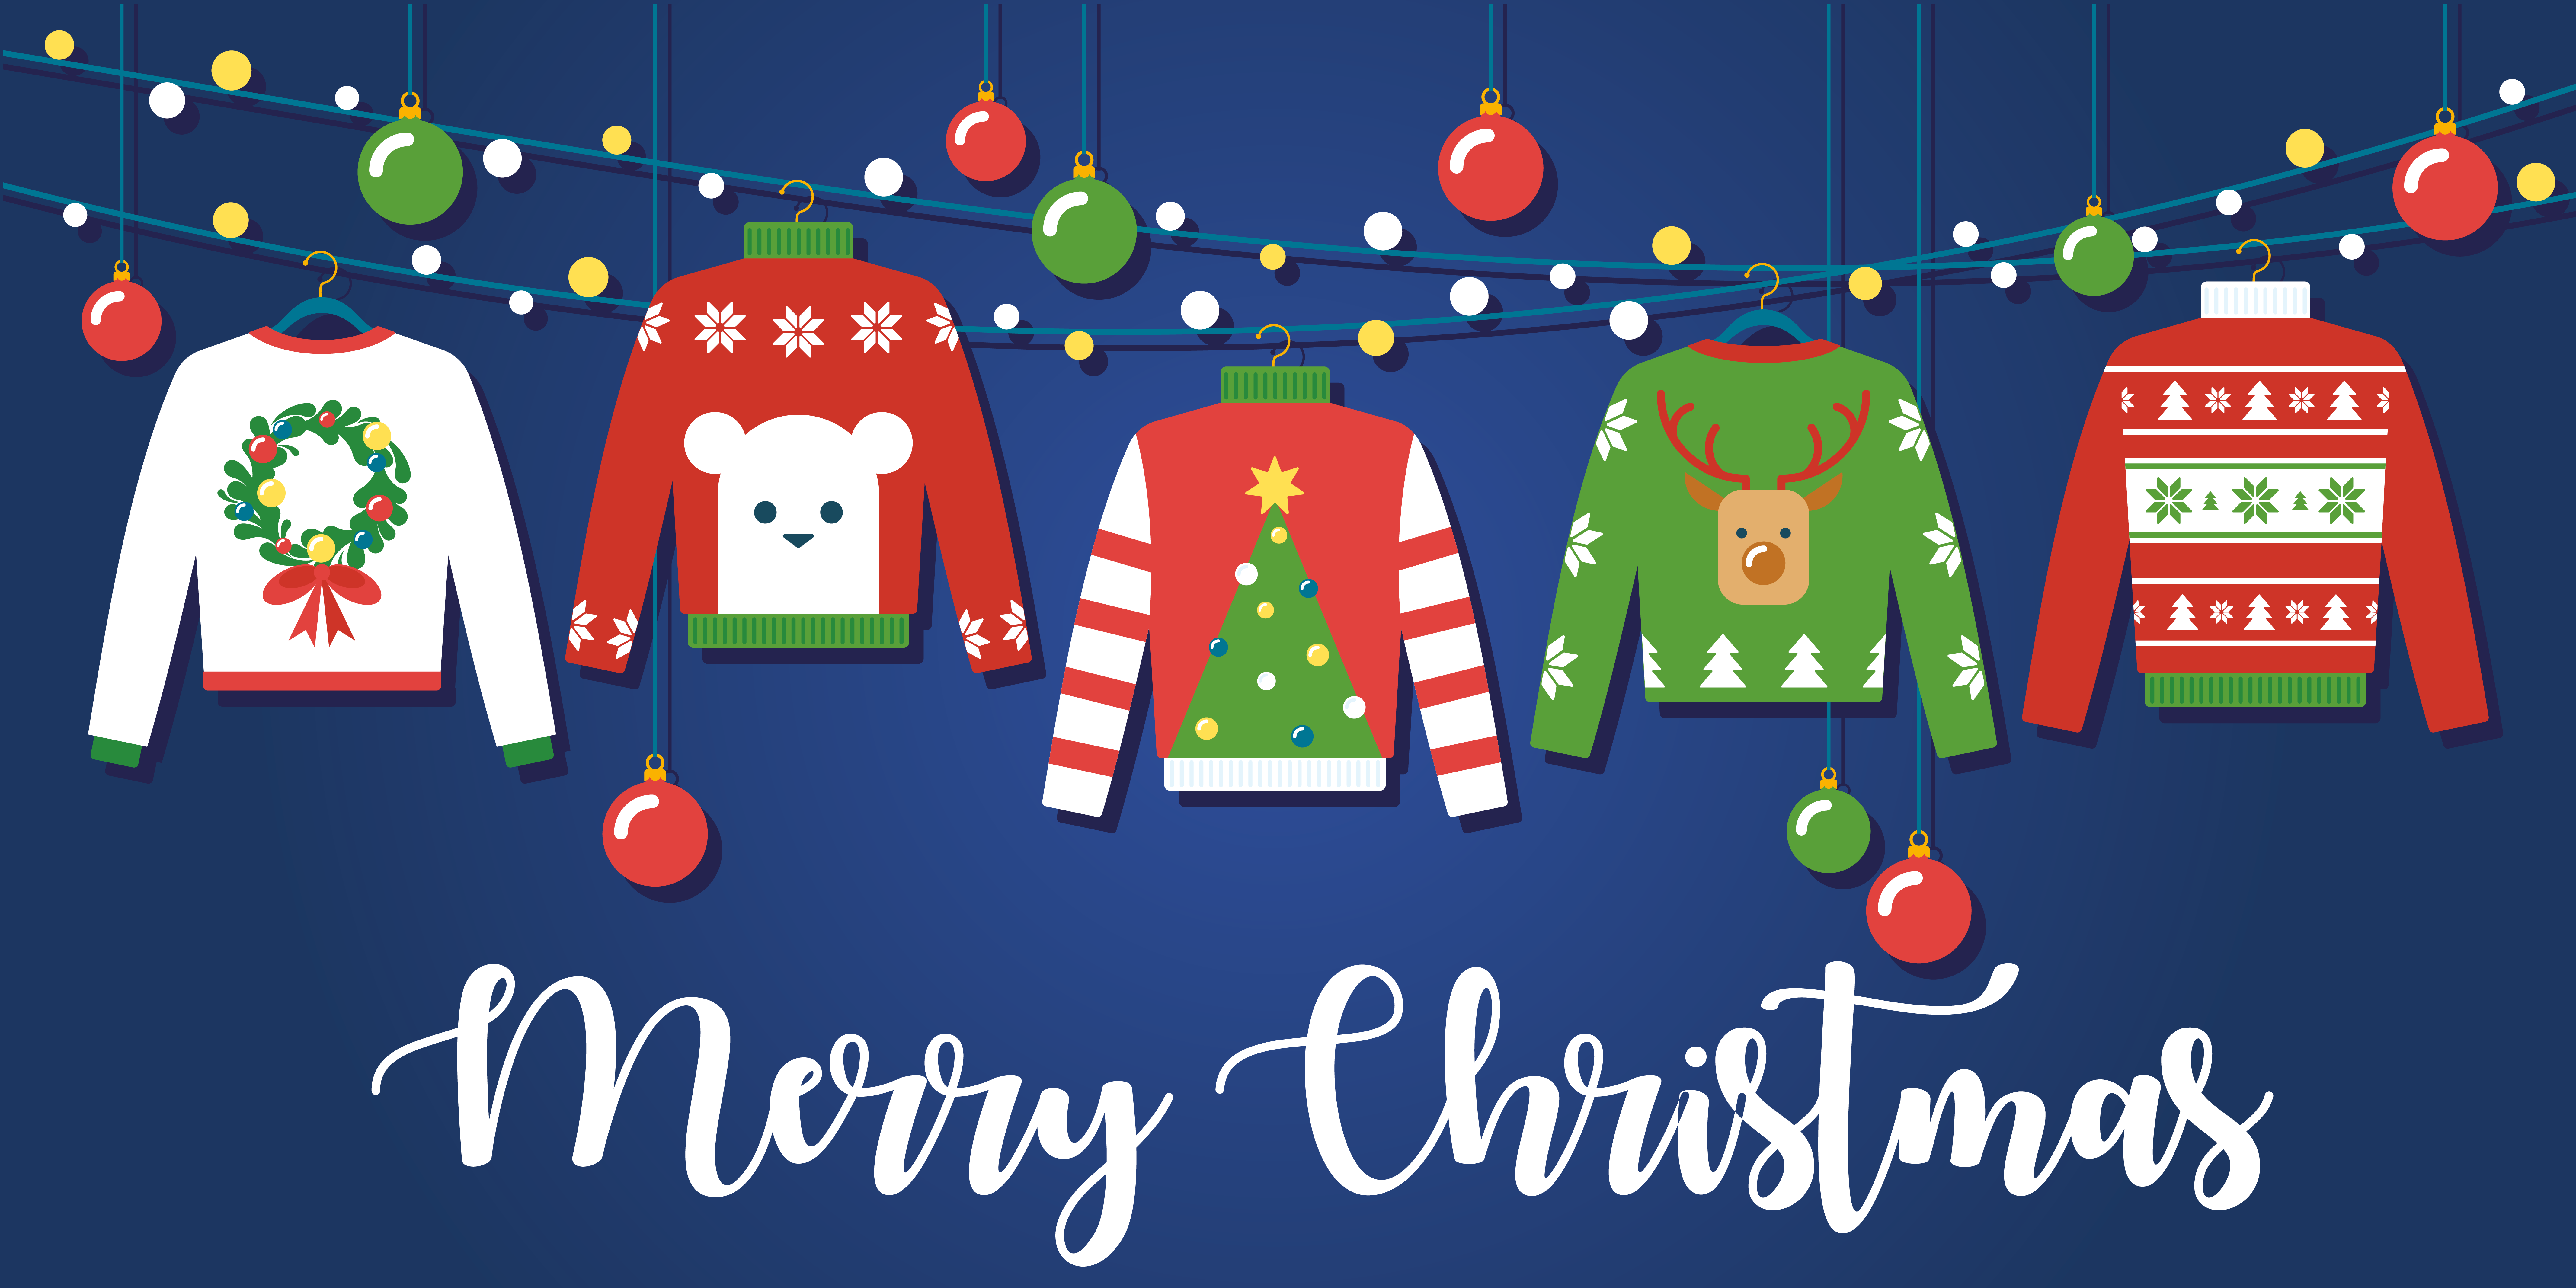 christmas jumpers and text merry christmas